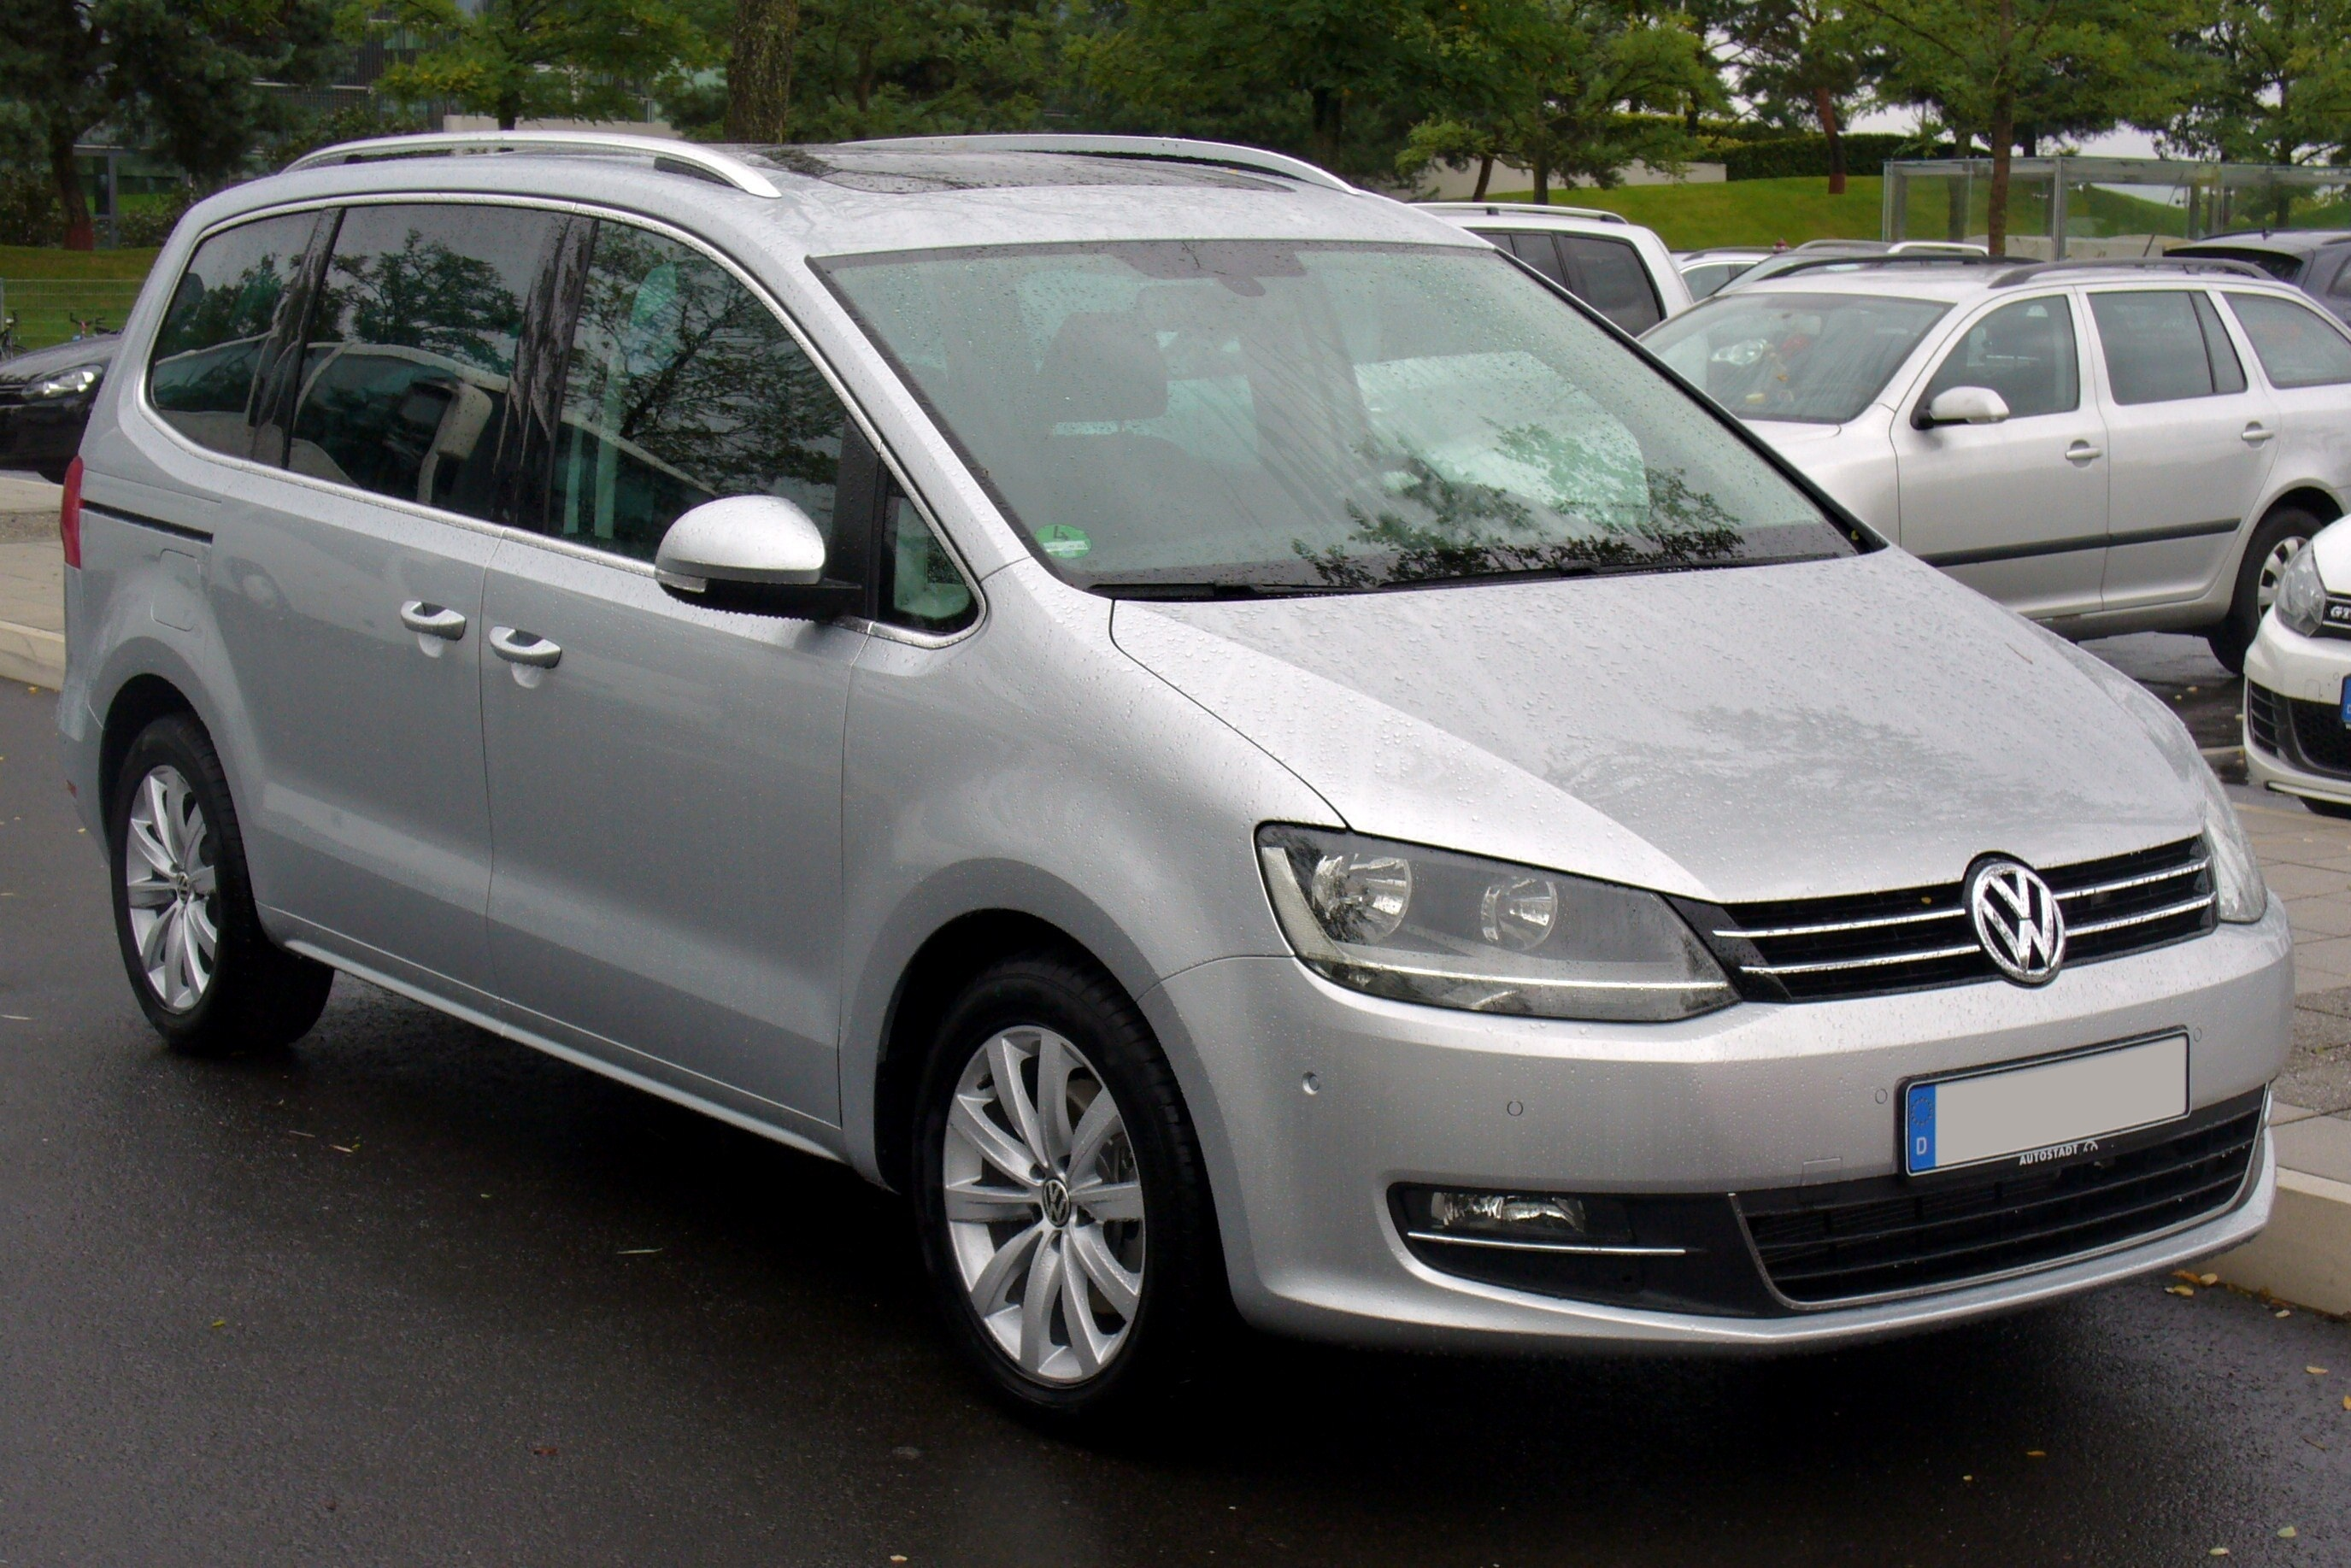 VOLKSWAGEN SHARAN 2.0 TDI brown